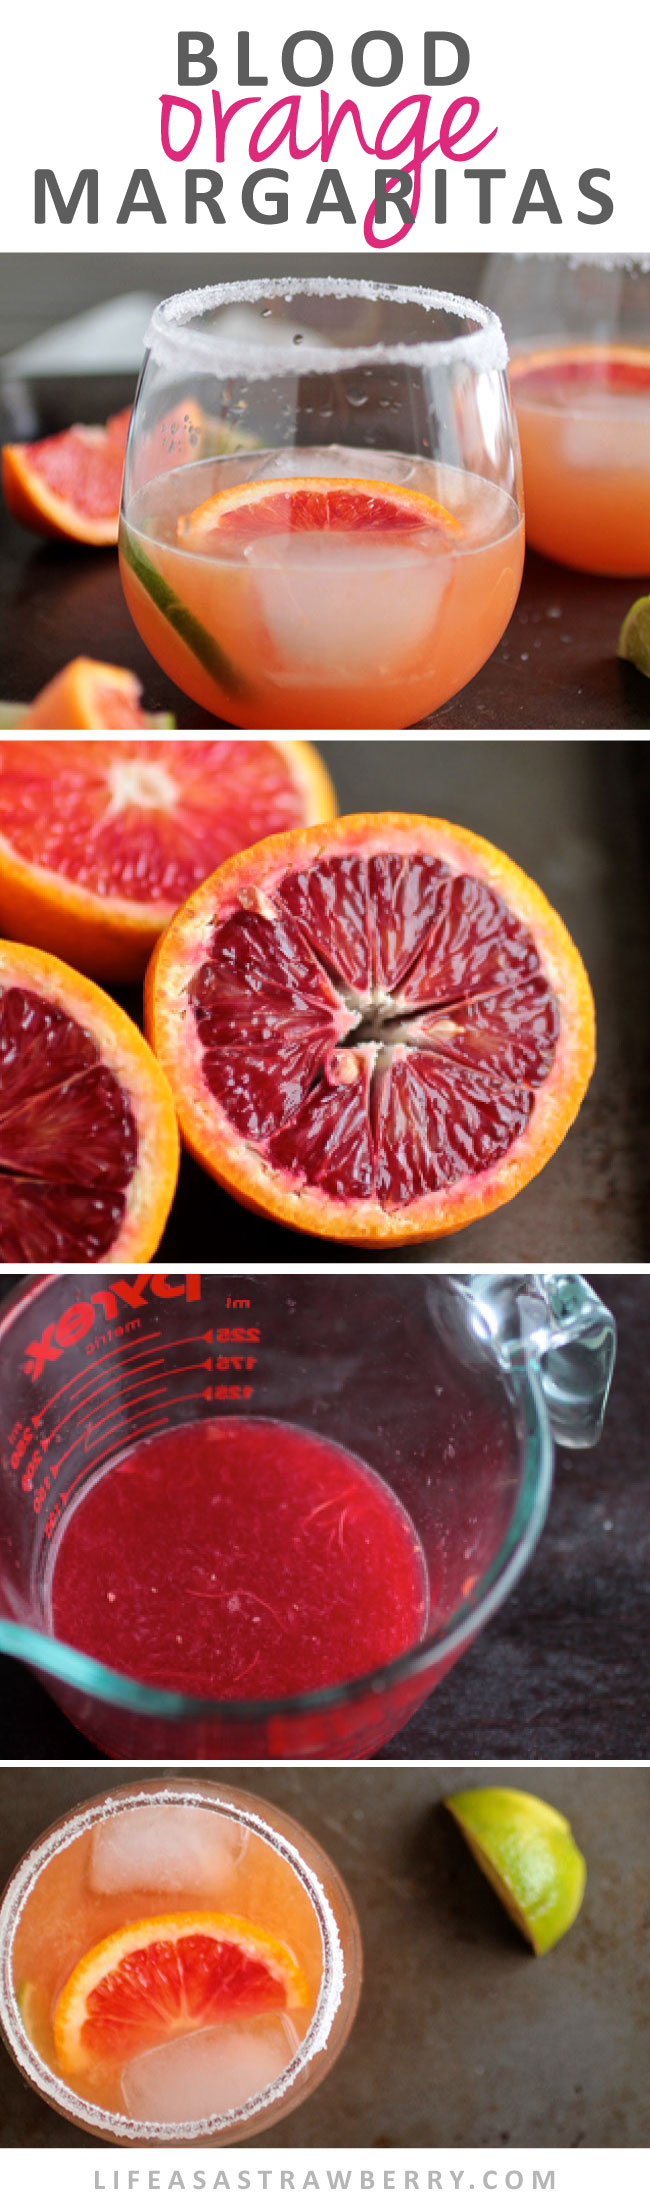 Blood Orange Margaritas | Delicious margaritas with blood orange juice and a ton of flavor. A fun and colorful tequila cocktail recipe!